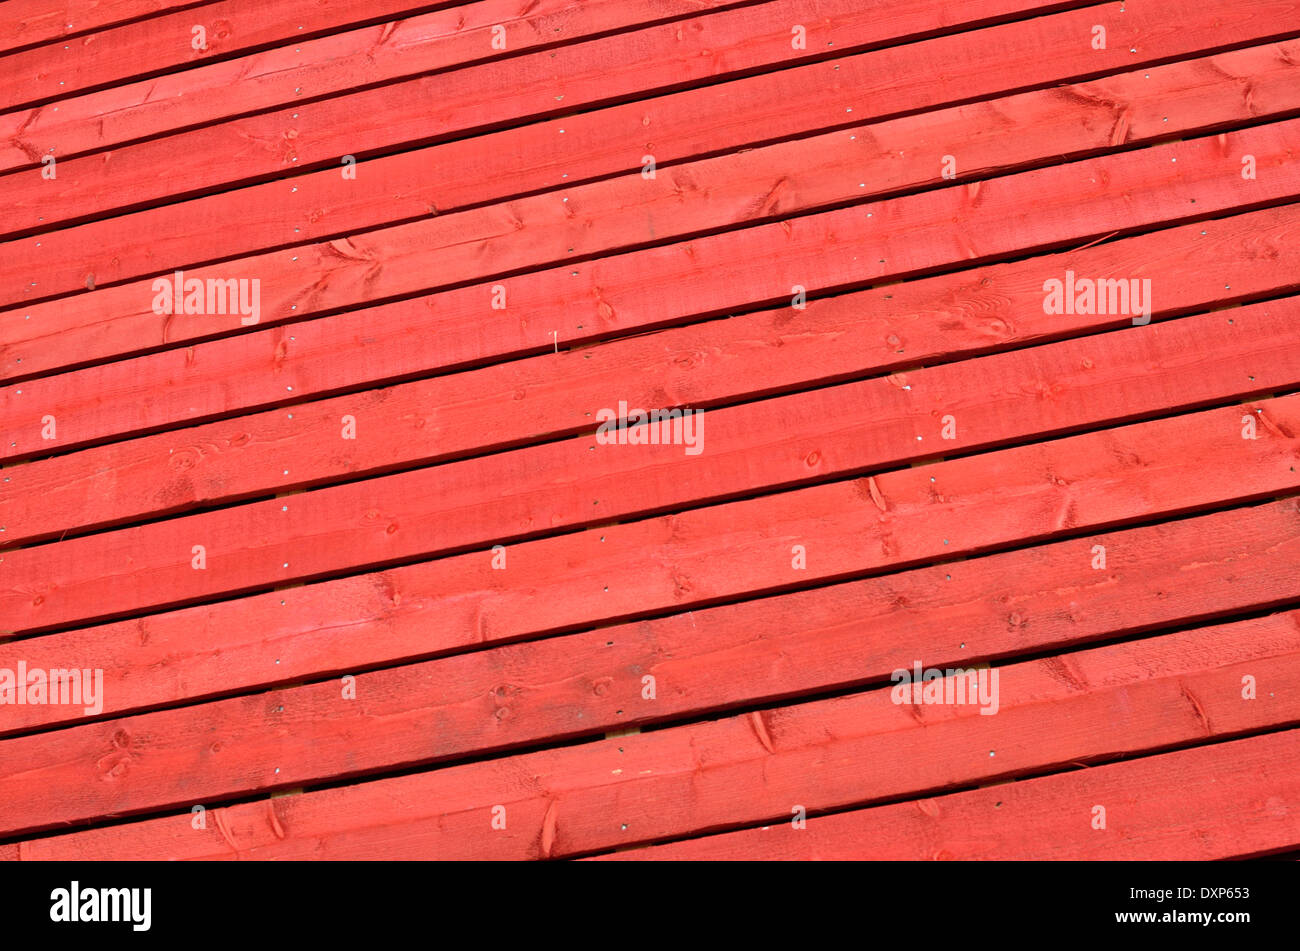 Close-up of orange painted wooden fence - Stock Image